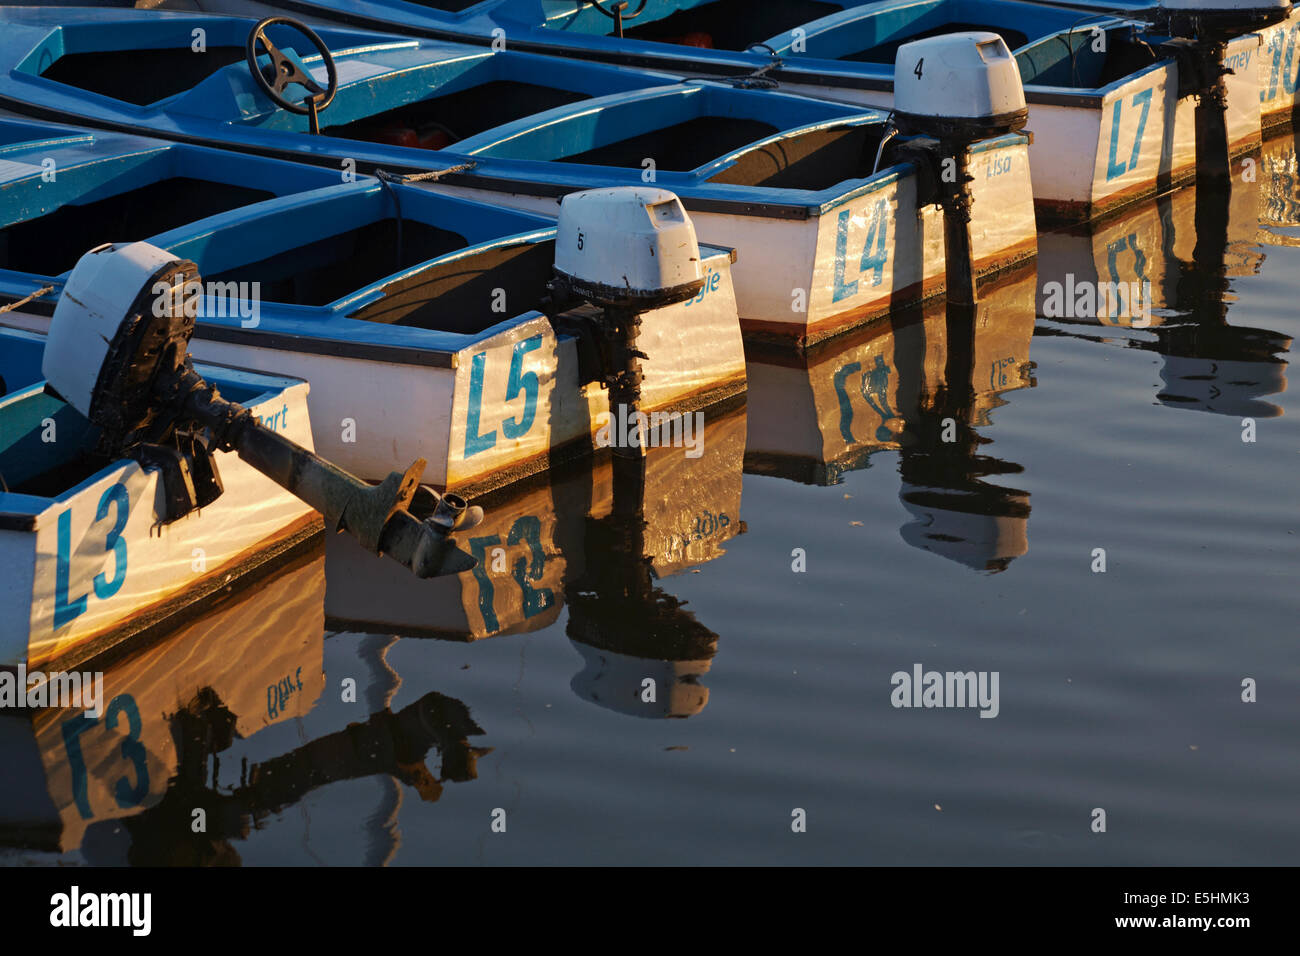 motors on boats for hire on the River Stour at Christchurch Town Quay, Dorset, UK in the evening light in July - Stock Image